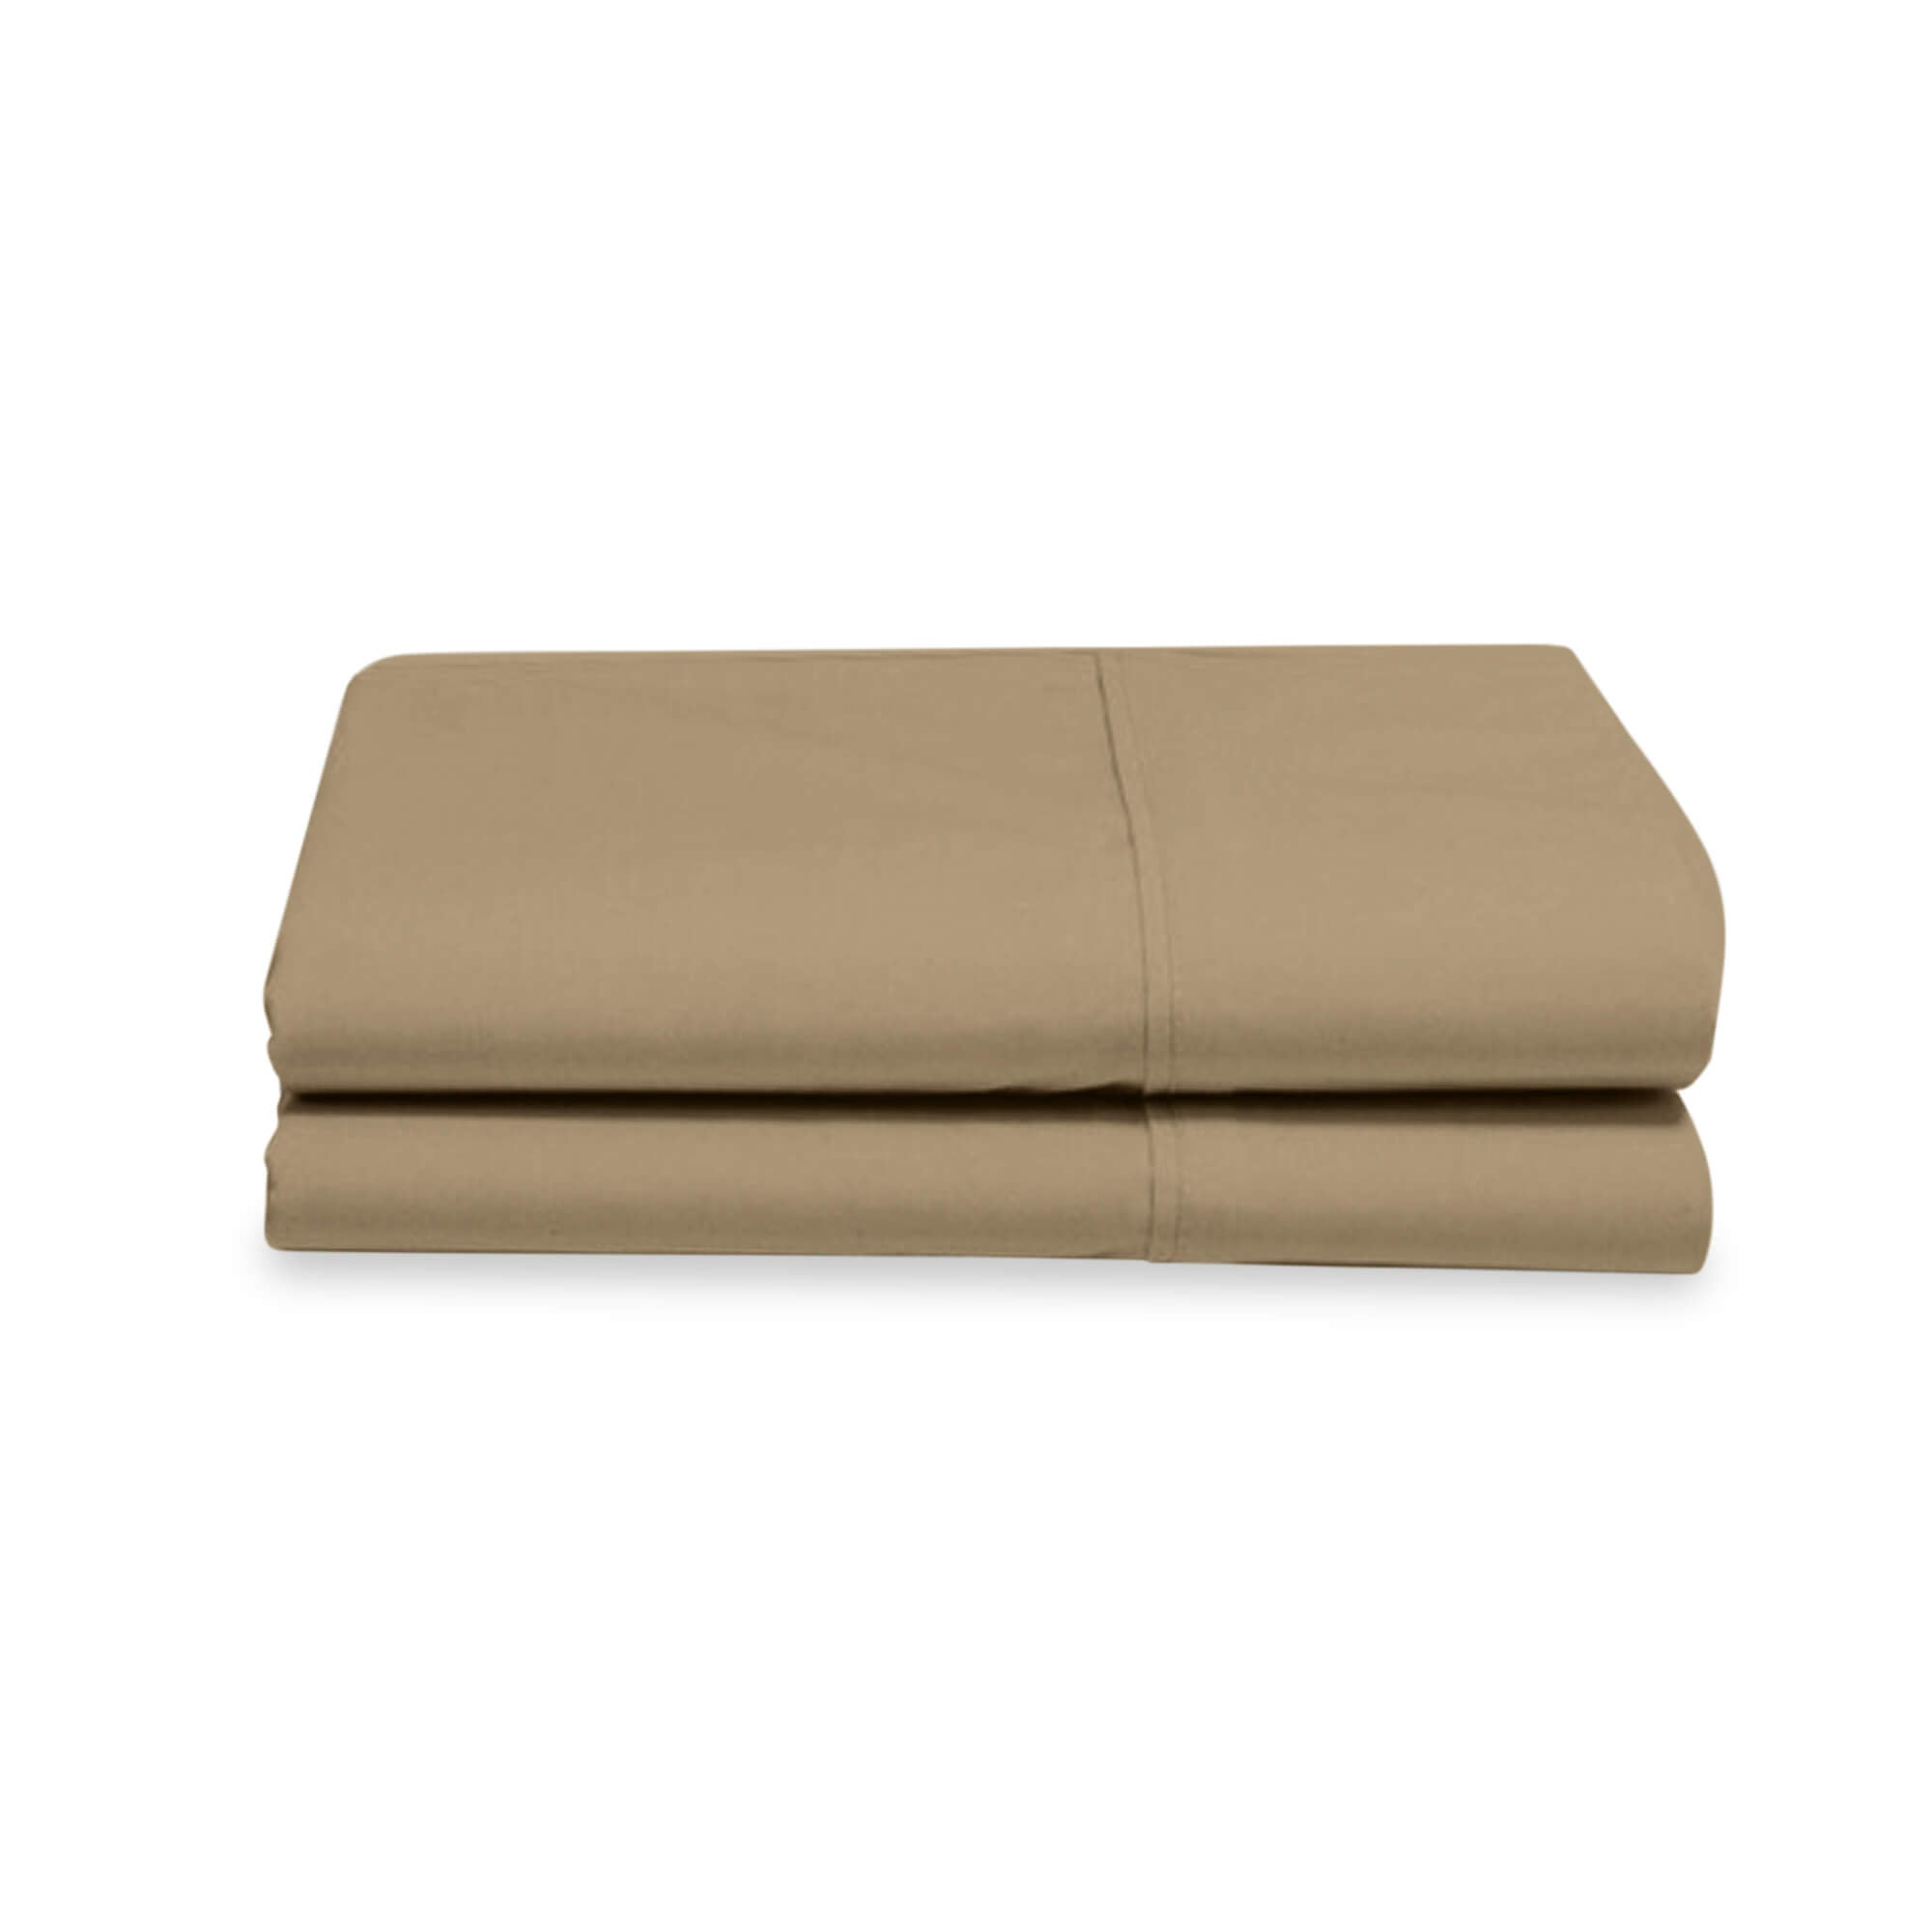 Delilah Home 100% Organic Cotton Pillow Cases Jungle Pillows